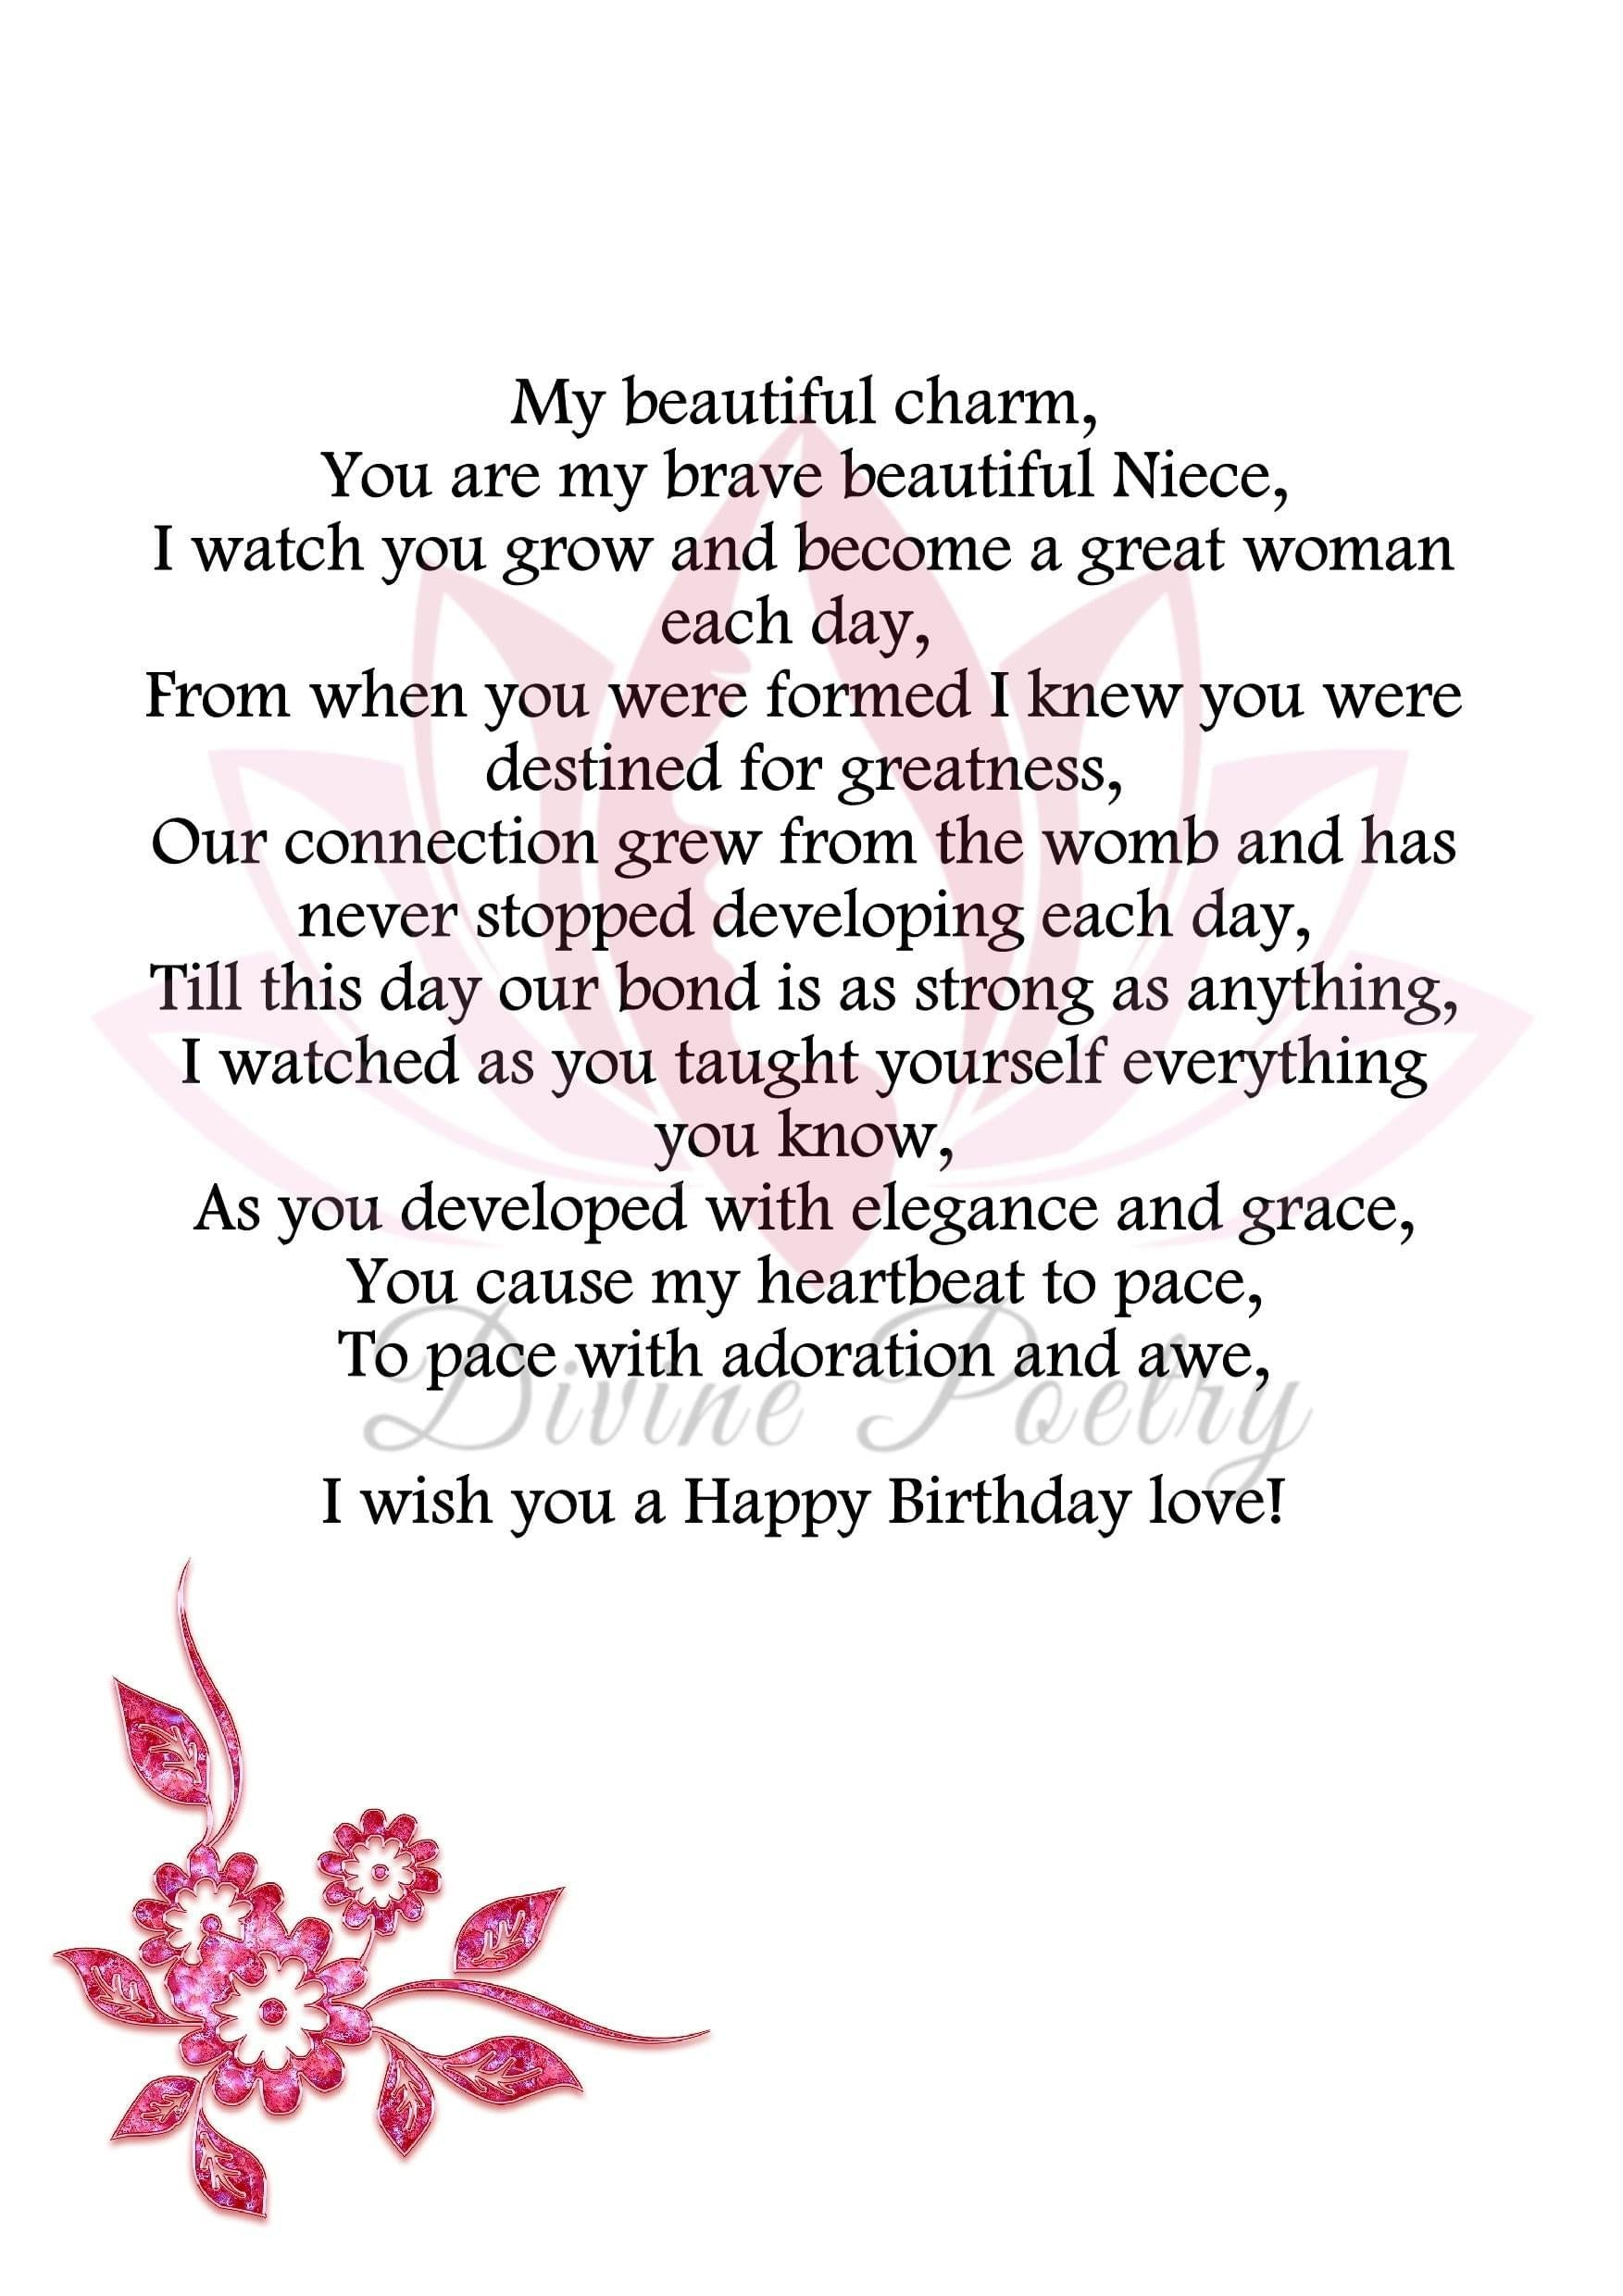 To My Beautiful Niece - Divine Poetry